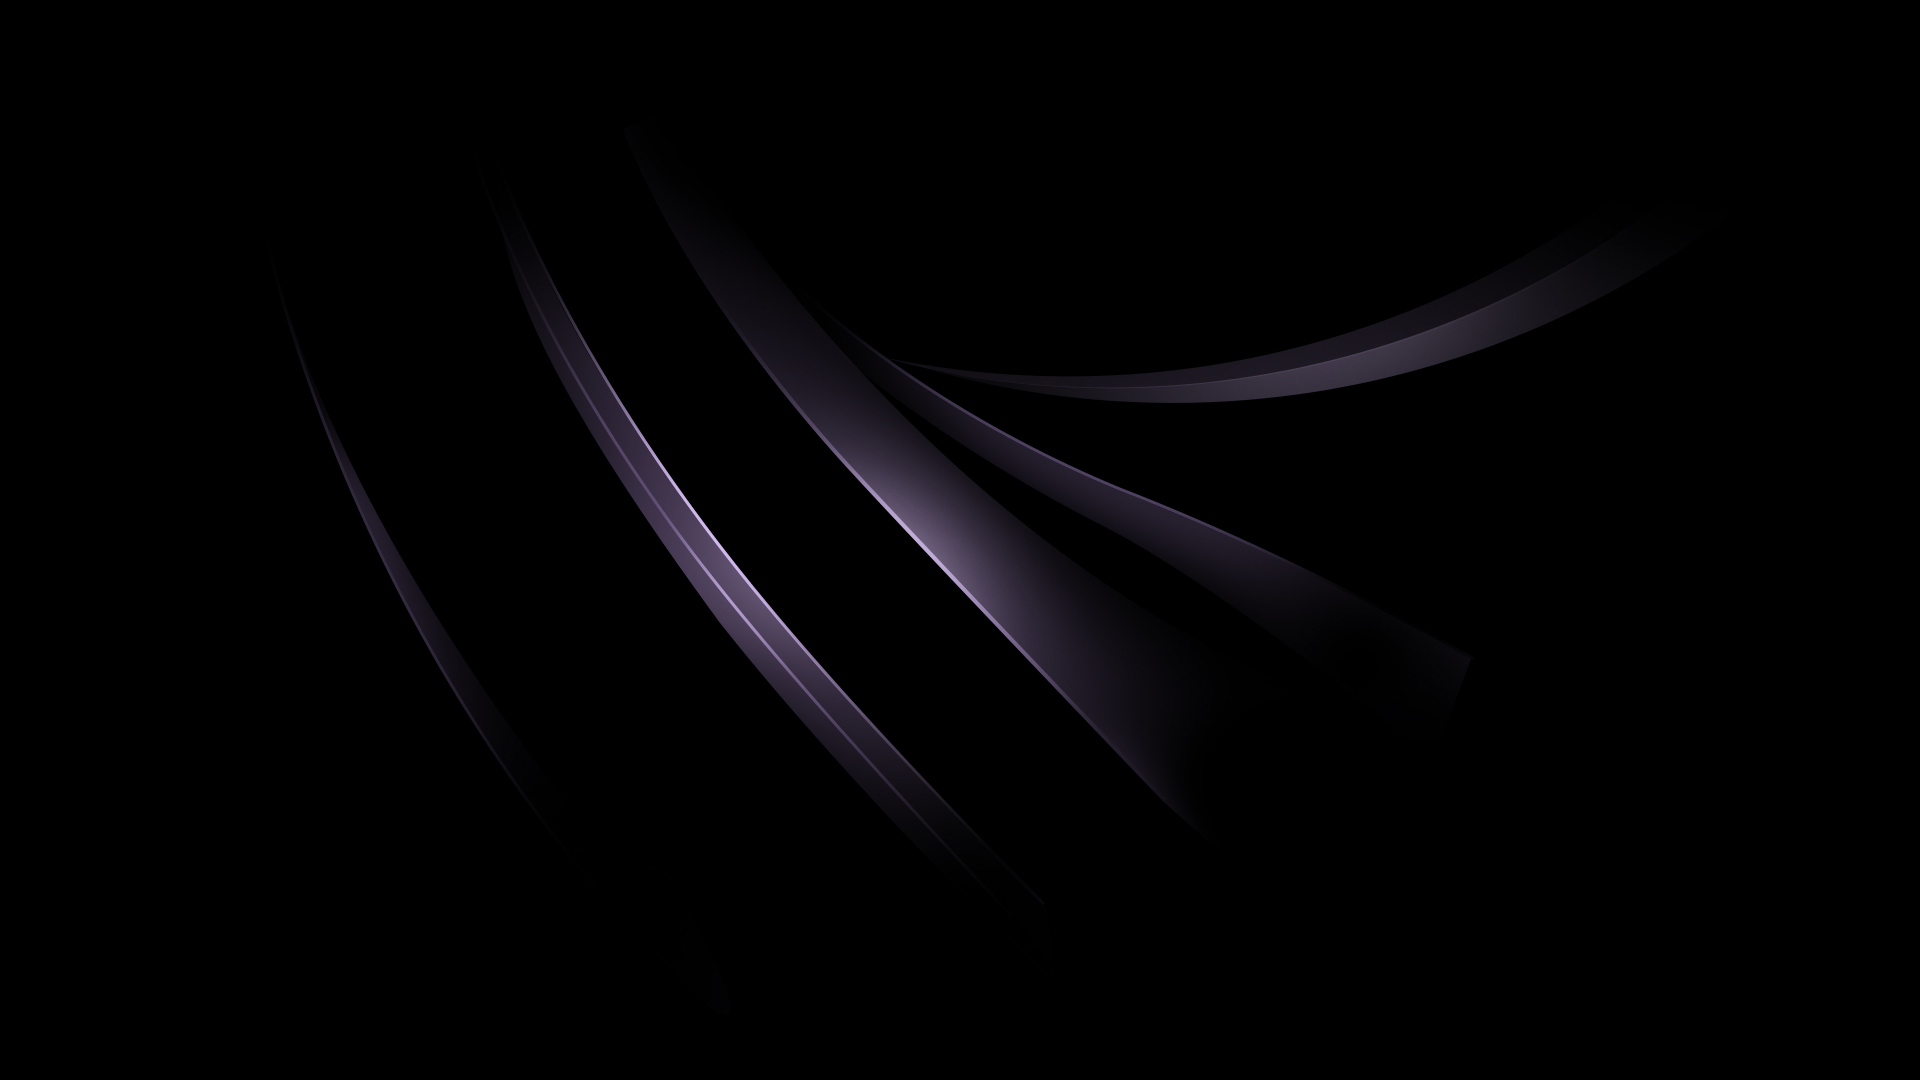 Dark Black Wallpapers Wallpapers Hd